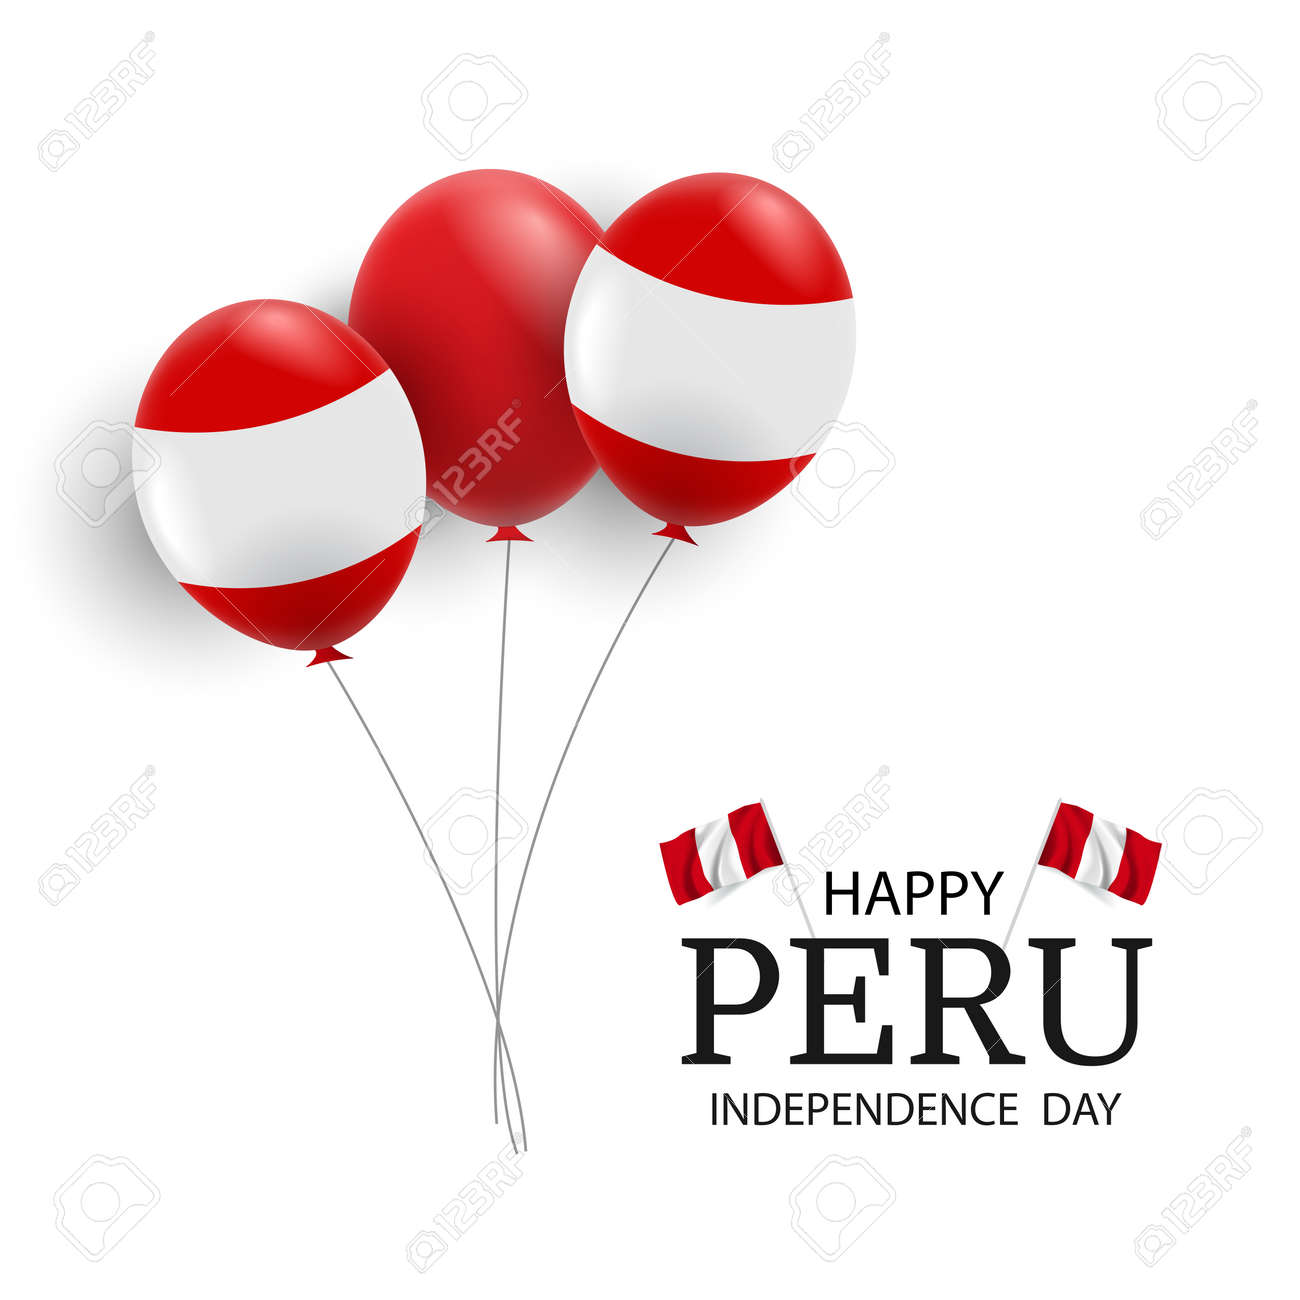 Vector Illustration of Peru Independence Day. - 170364718